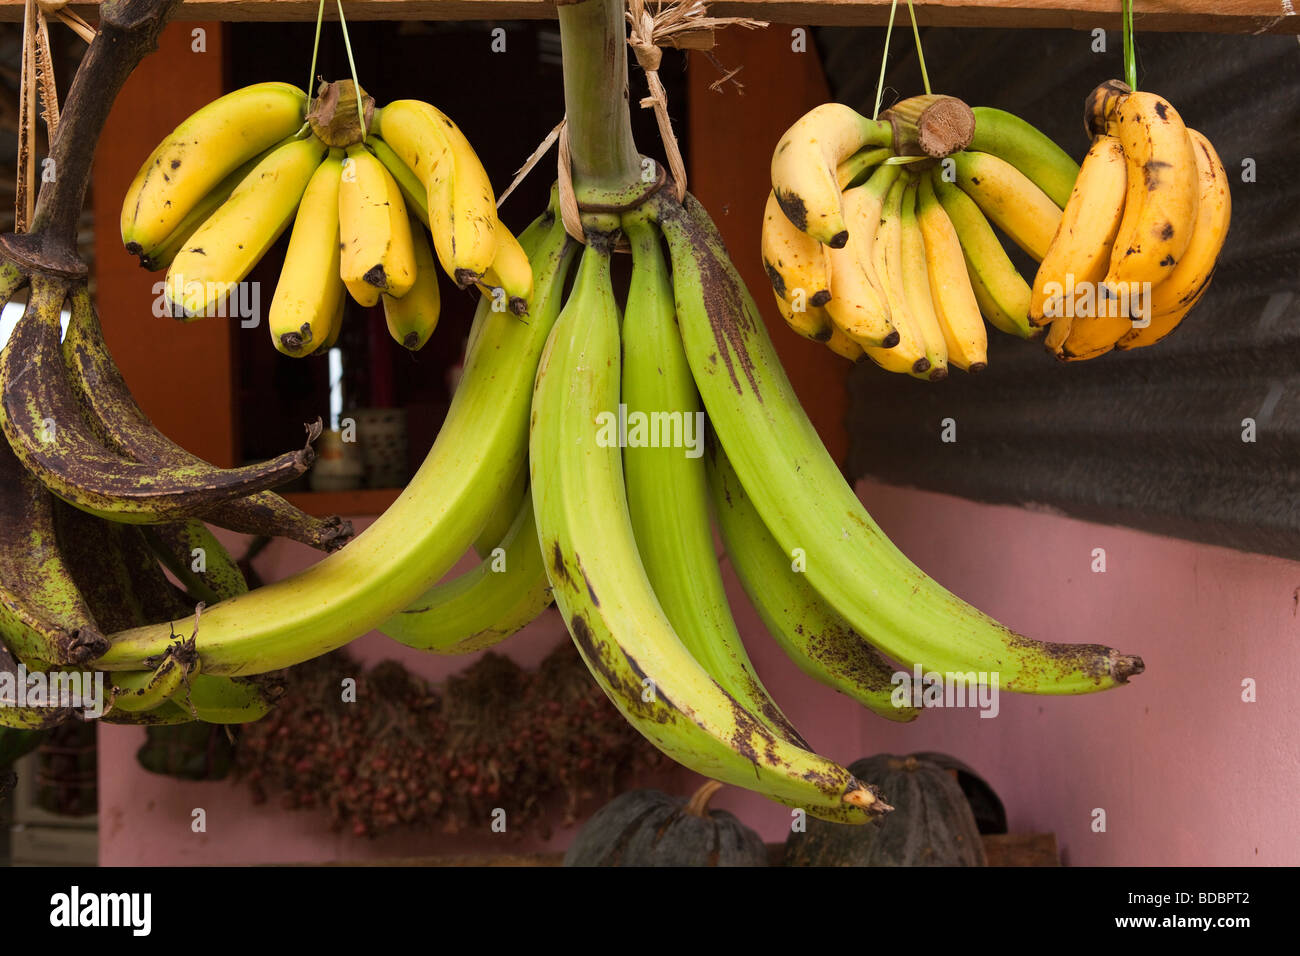 Indonesia Sulawesi Tana Toraja Makale locally grown bananas hanging up for sale at roadside stall - Stock Image